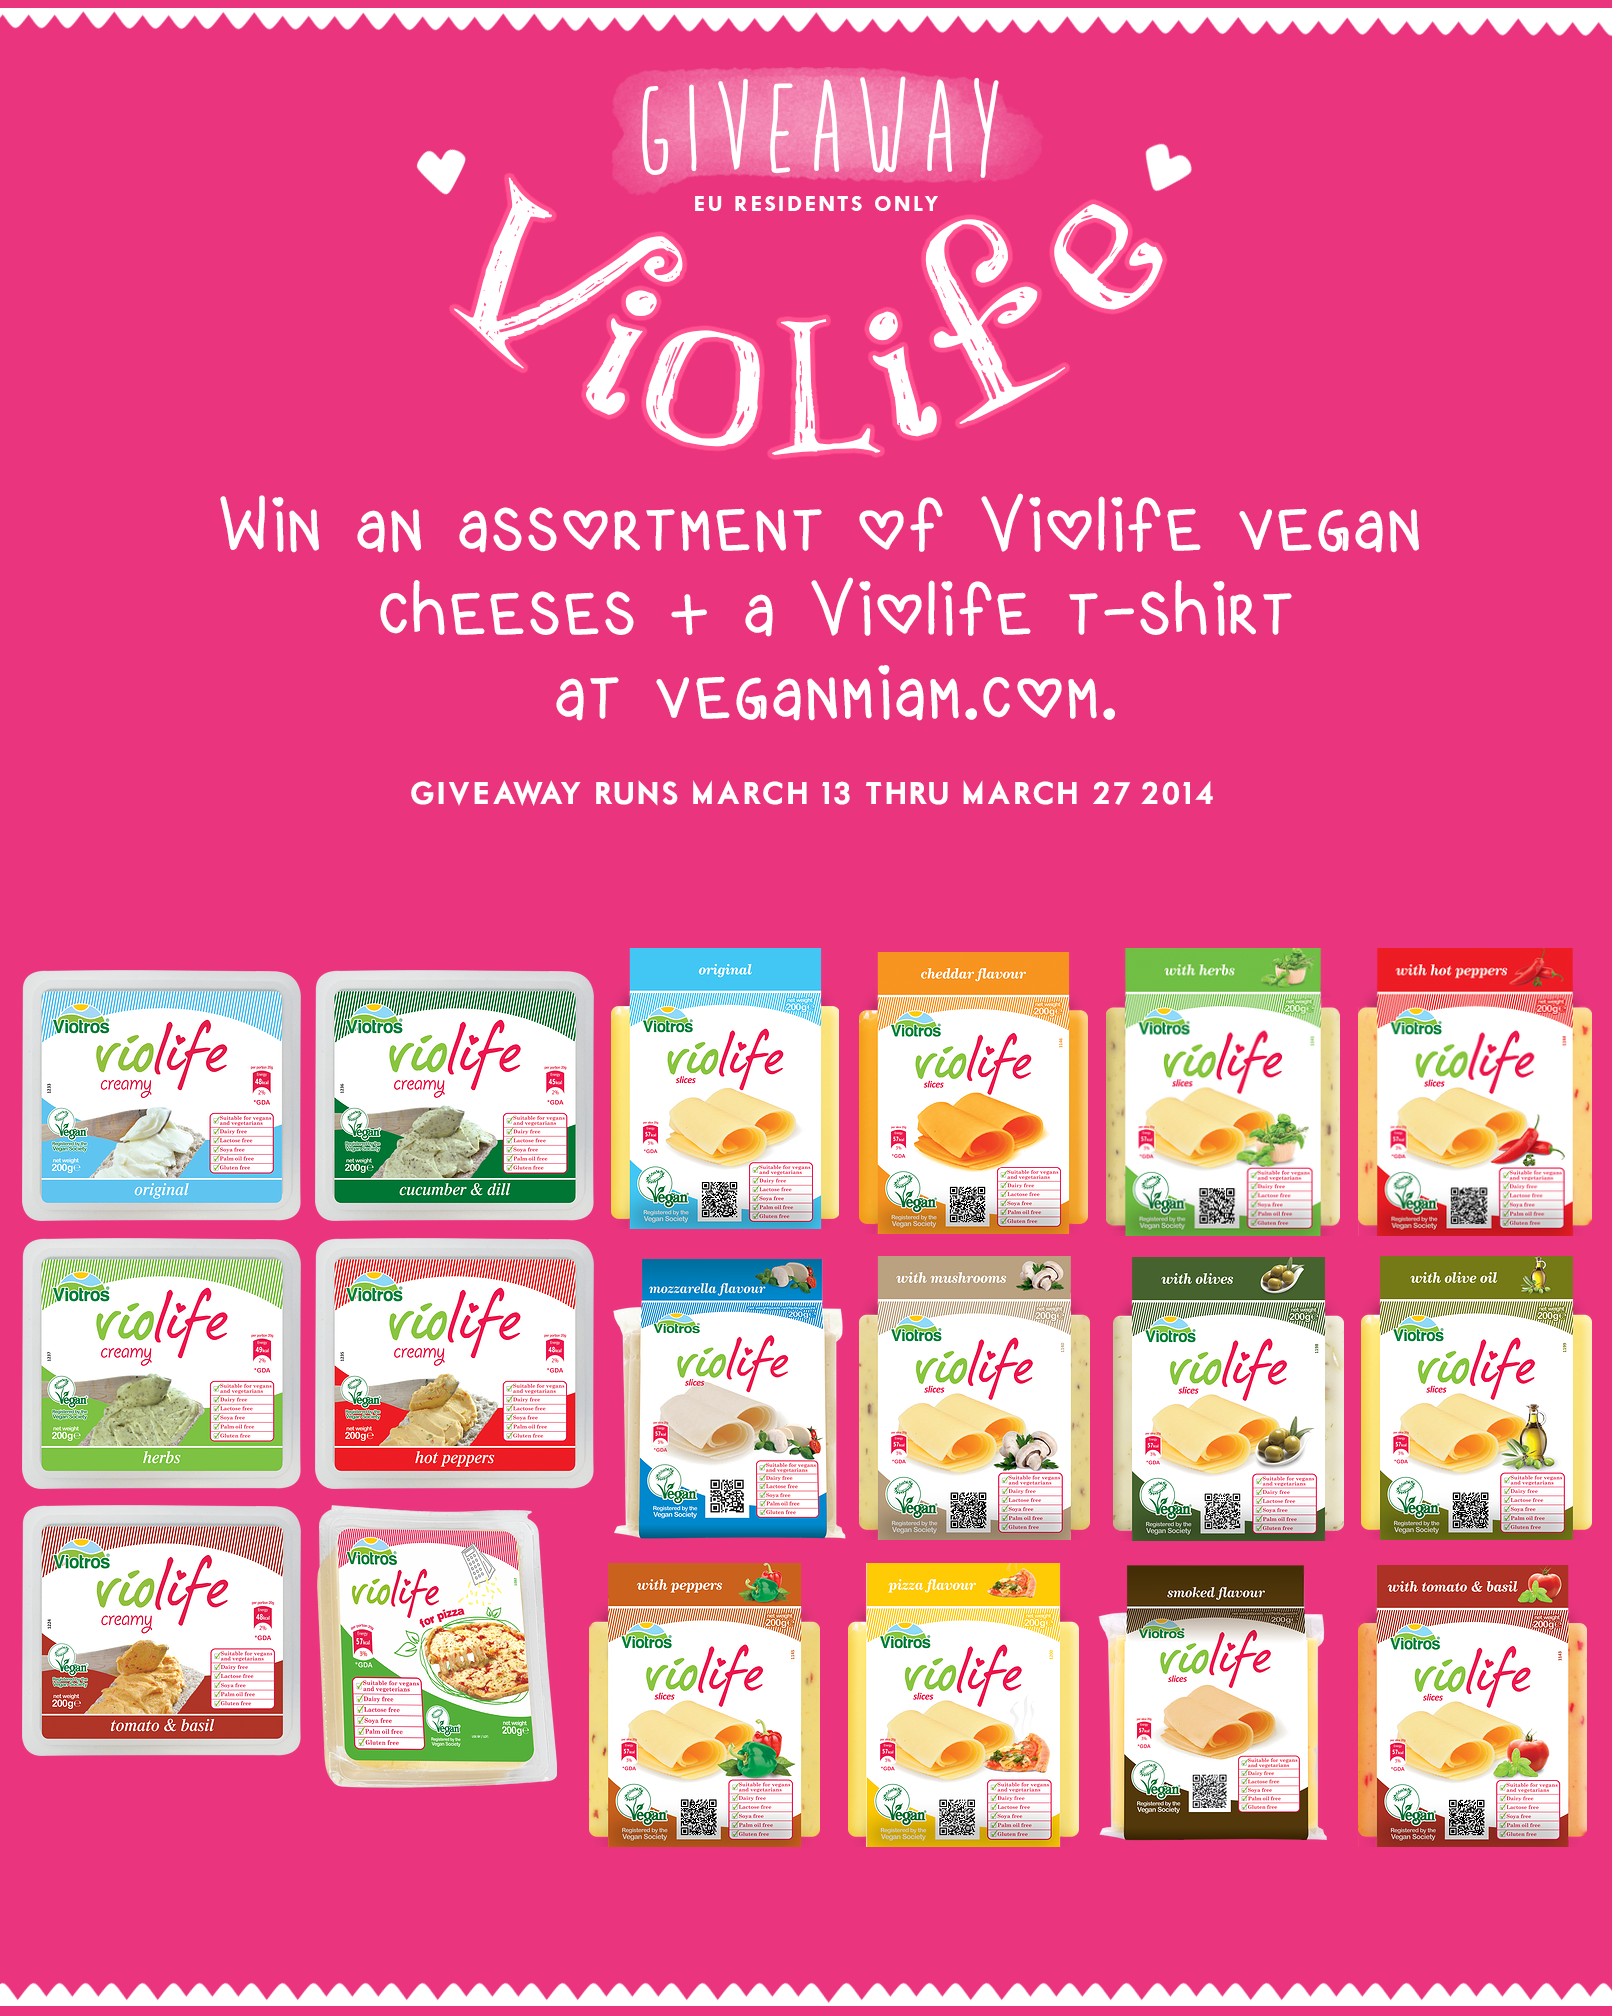 Violife Vegan Cheese Giveaway